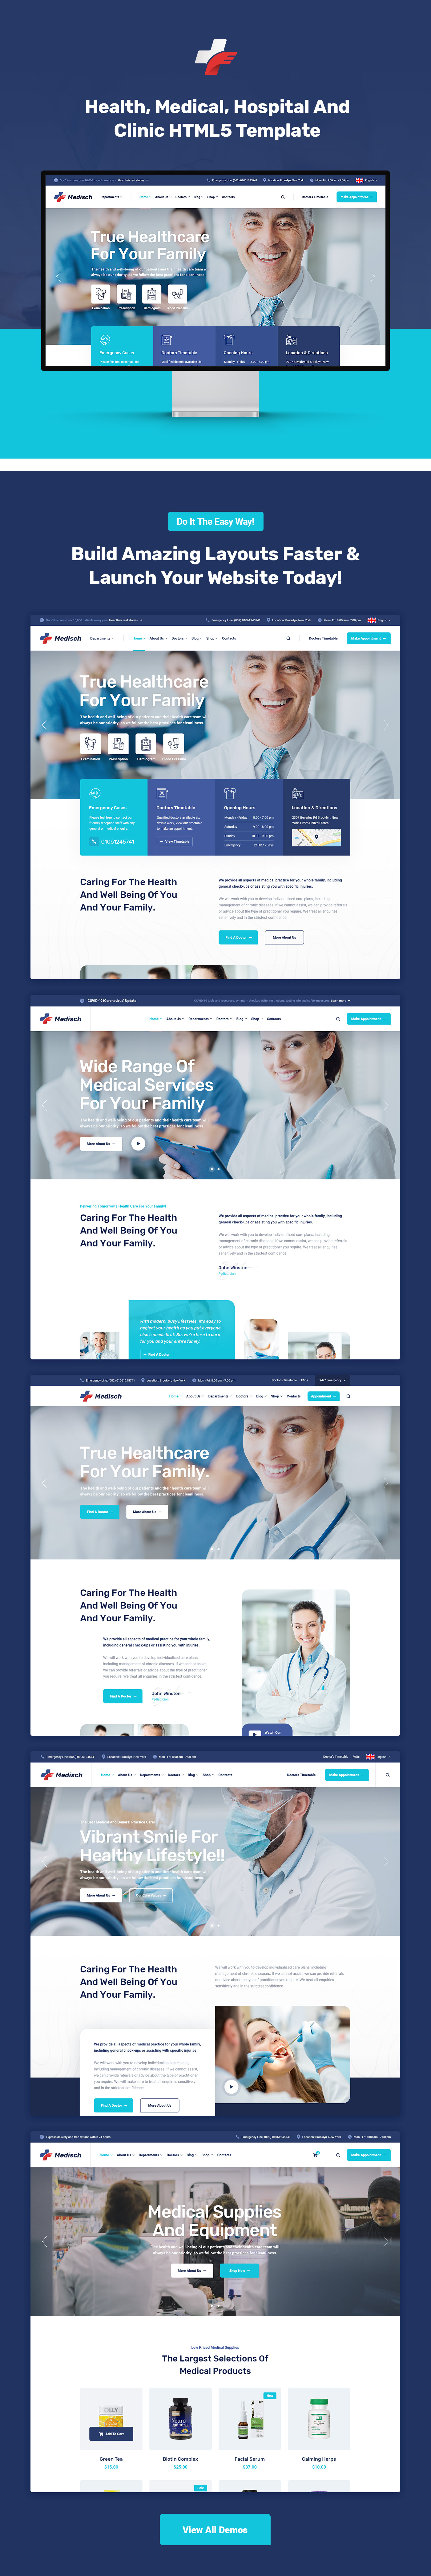 Medisch - Health & Medical HTML5 Template - 1